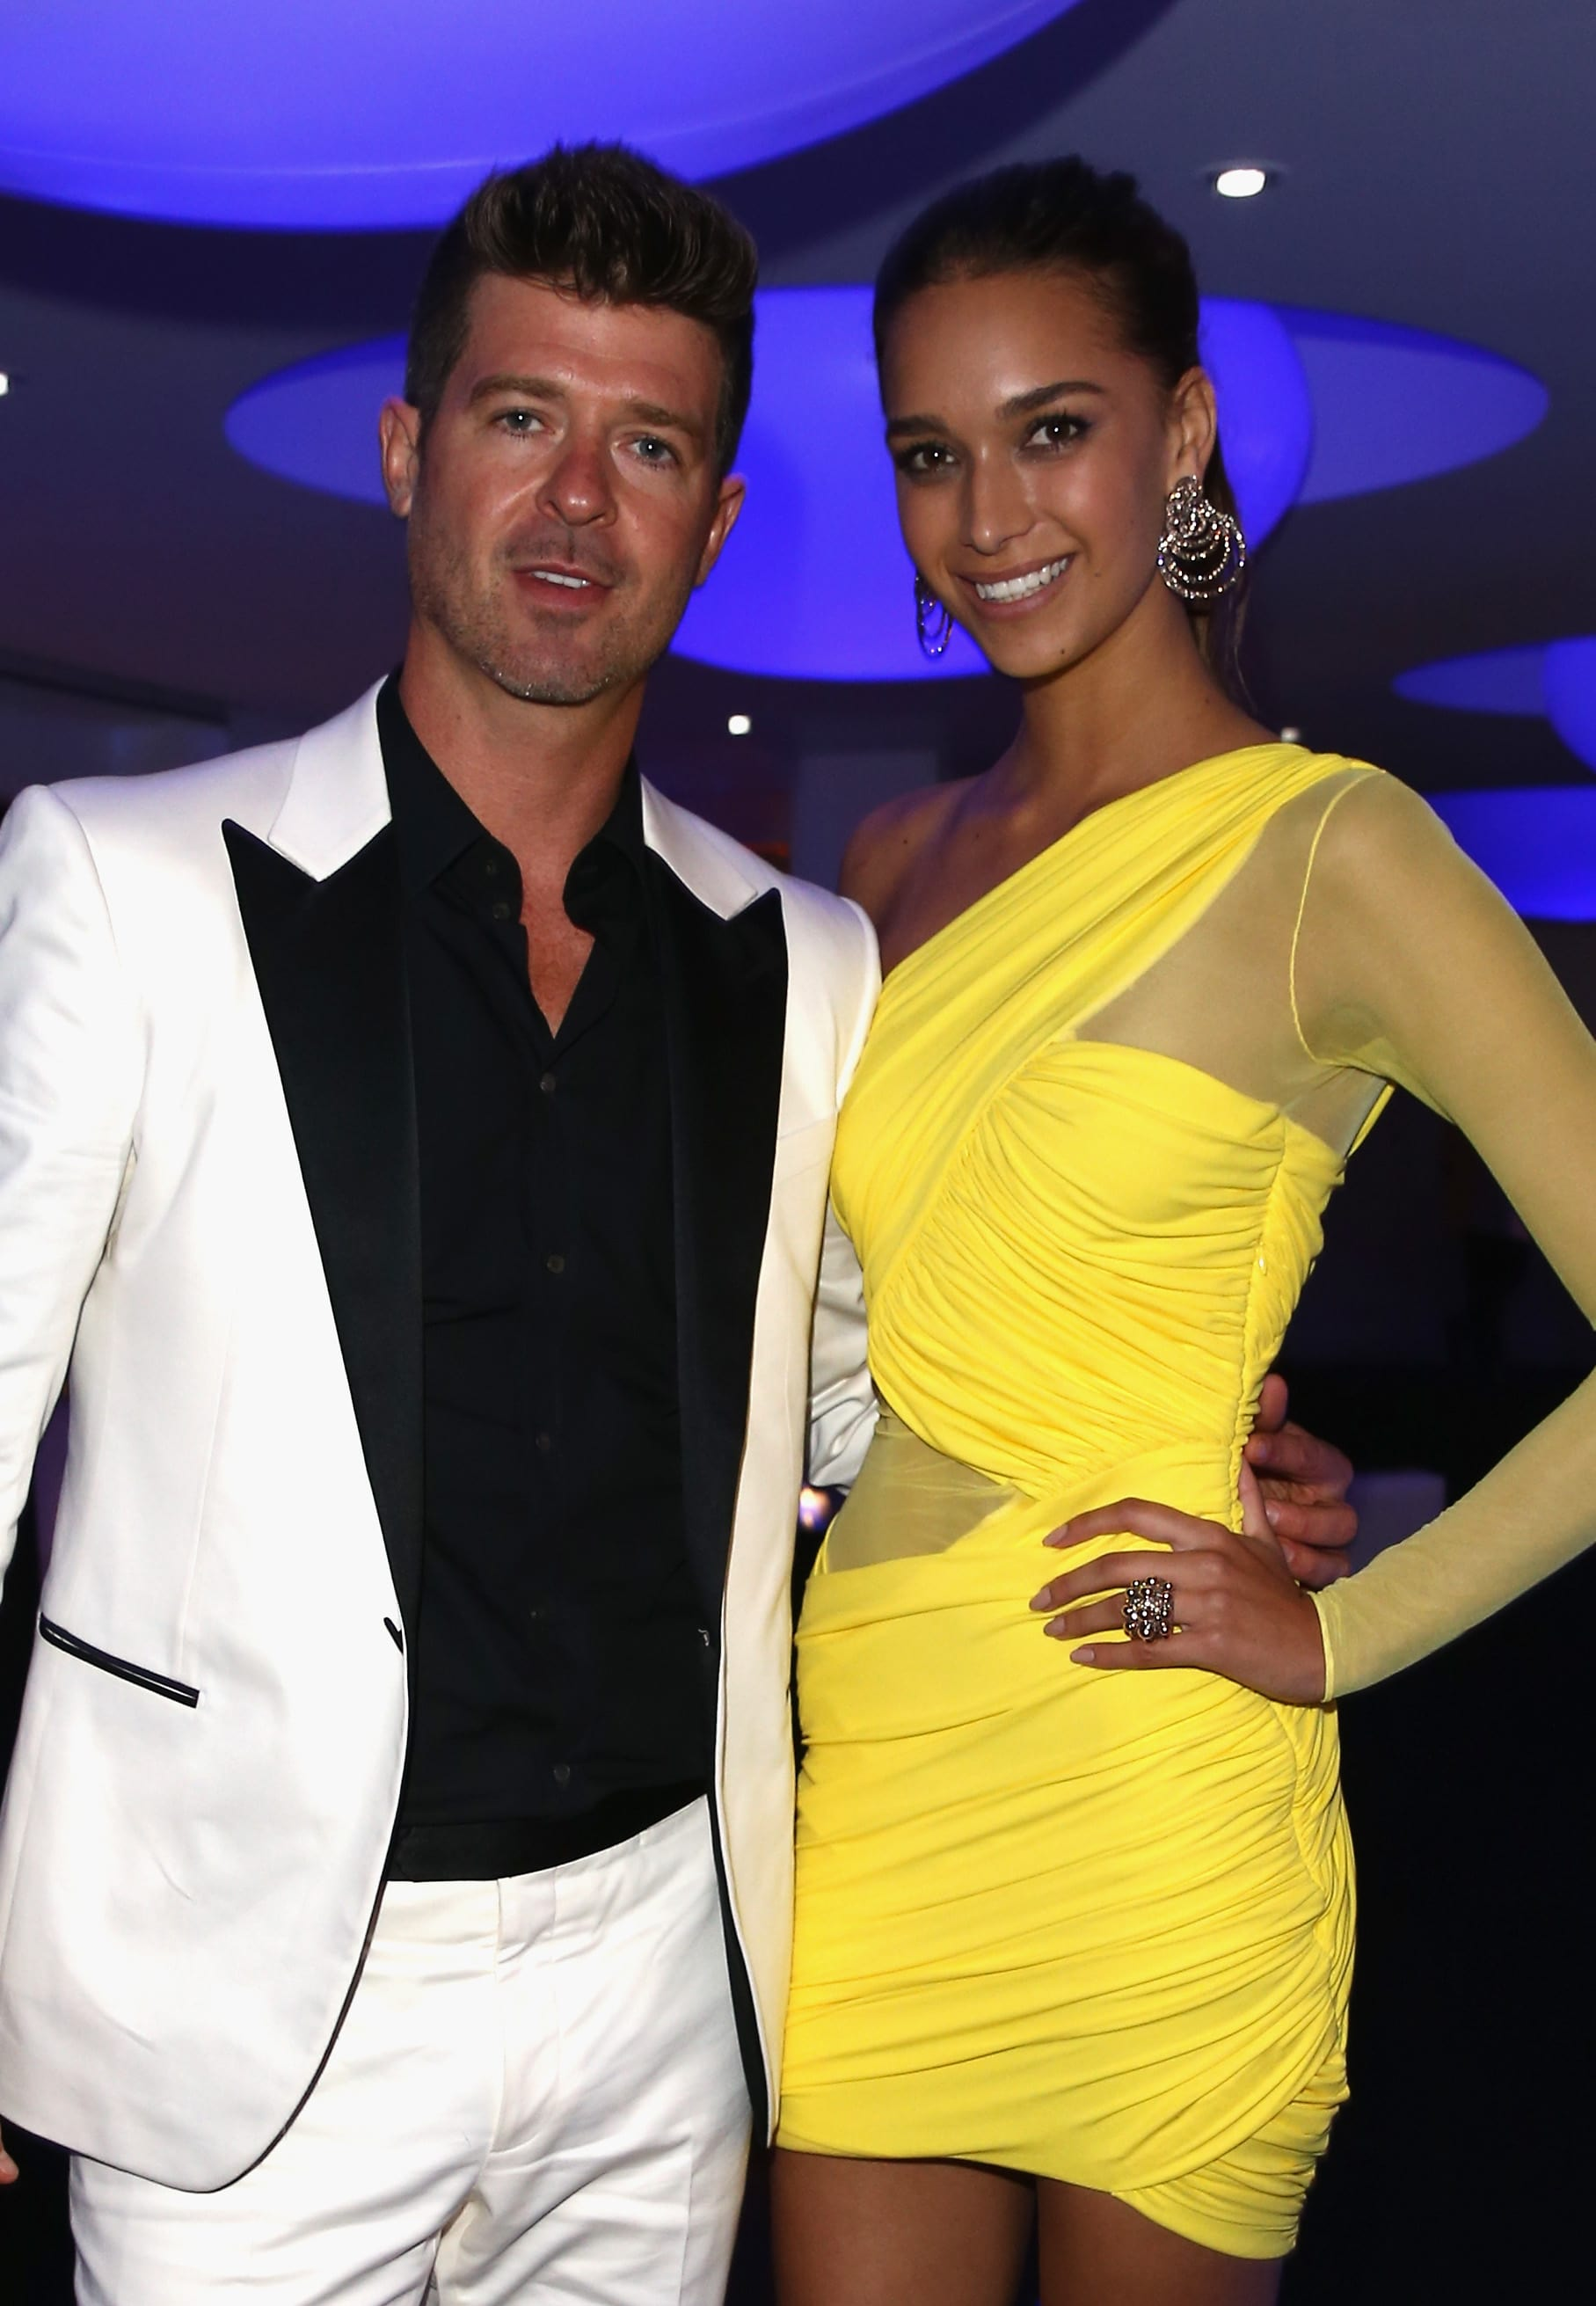 robin-thicke-who-is-he-dating-monster-dildo